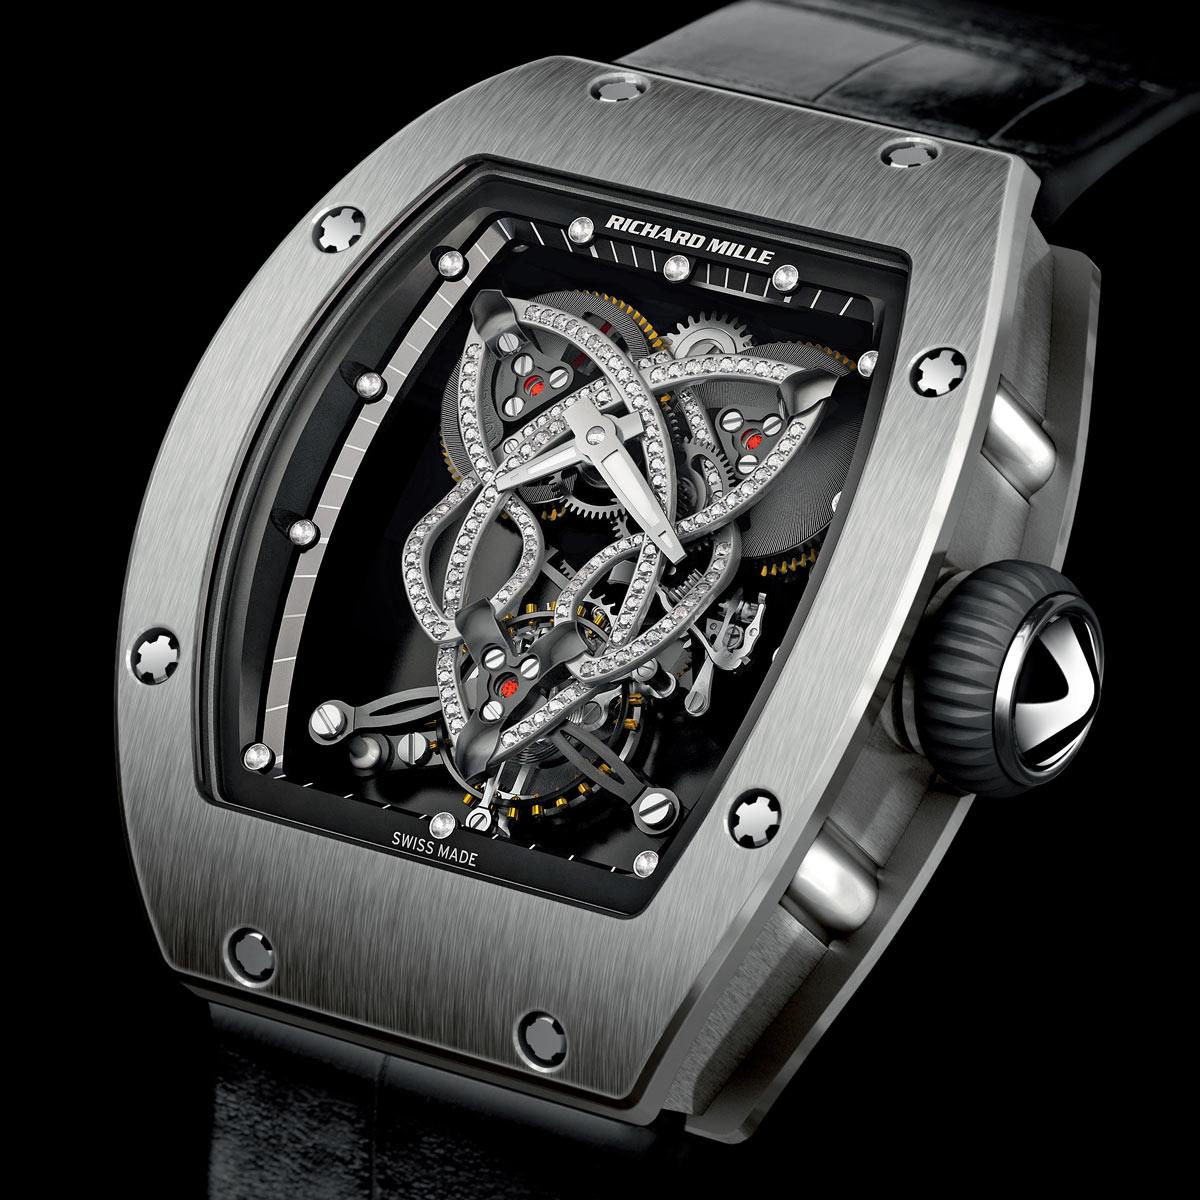 The watch quote the richard mille rm 019 celtic knot ladies the timeless nature of the spirit biocorpaavc Choice Image